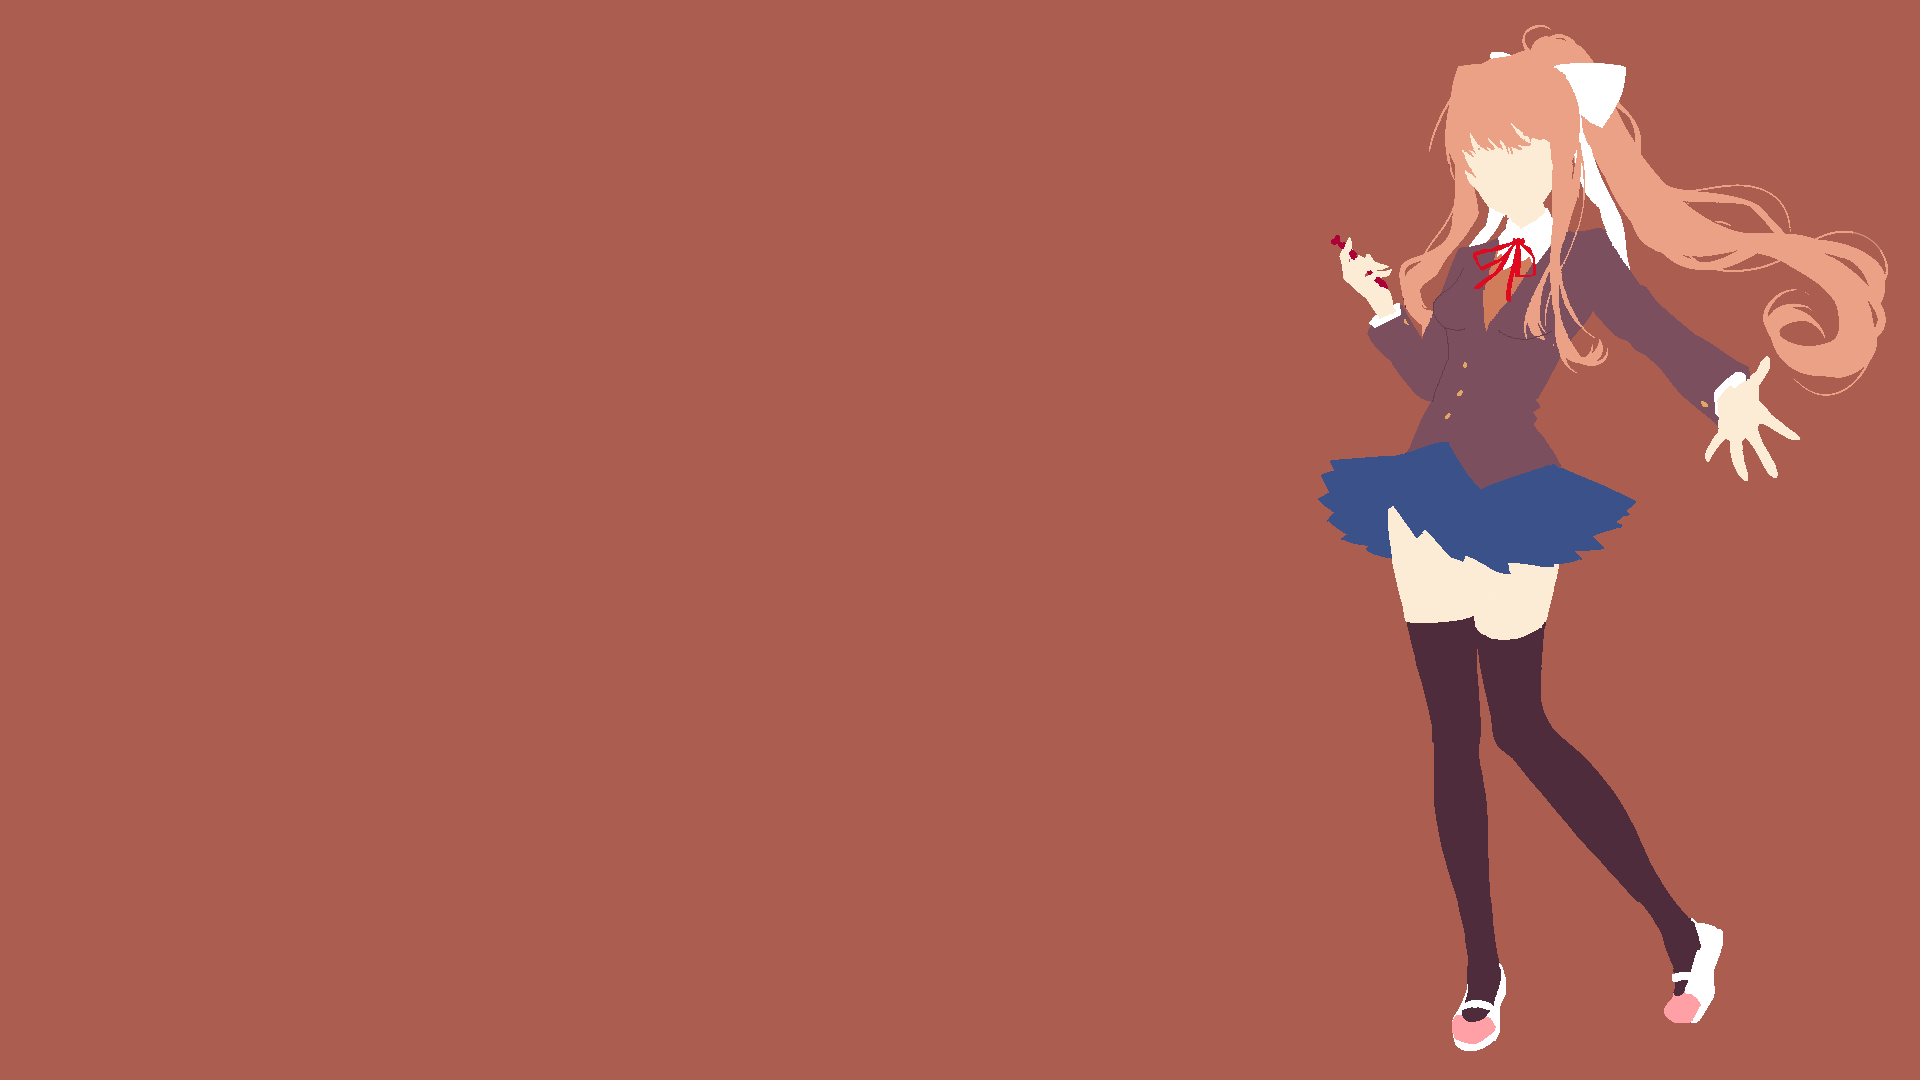 Minimalist Monika Wallpaper Literature Club Literature